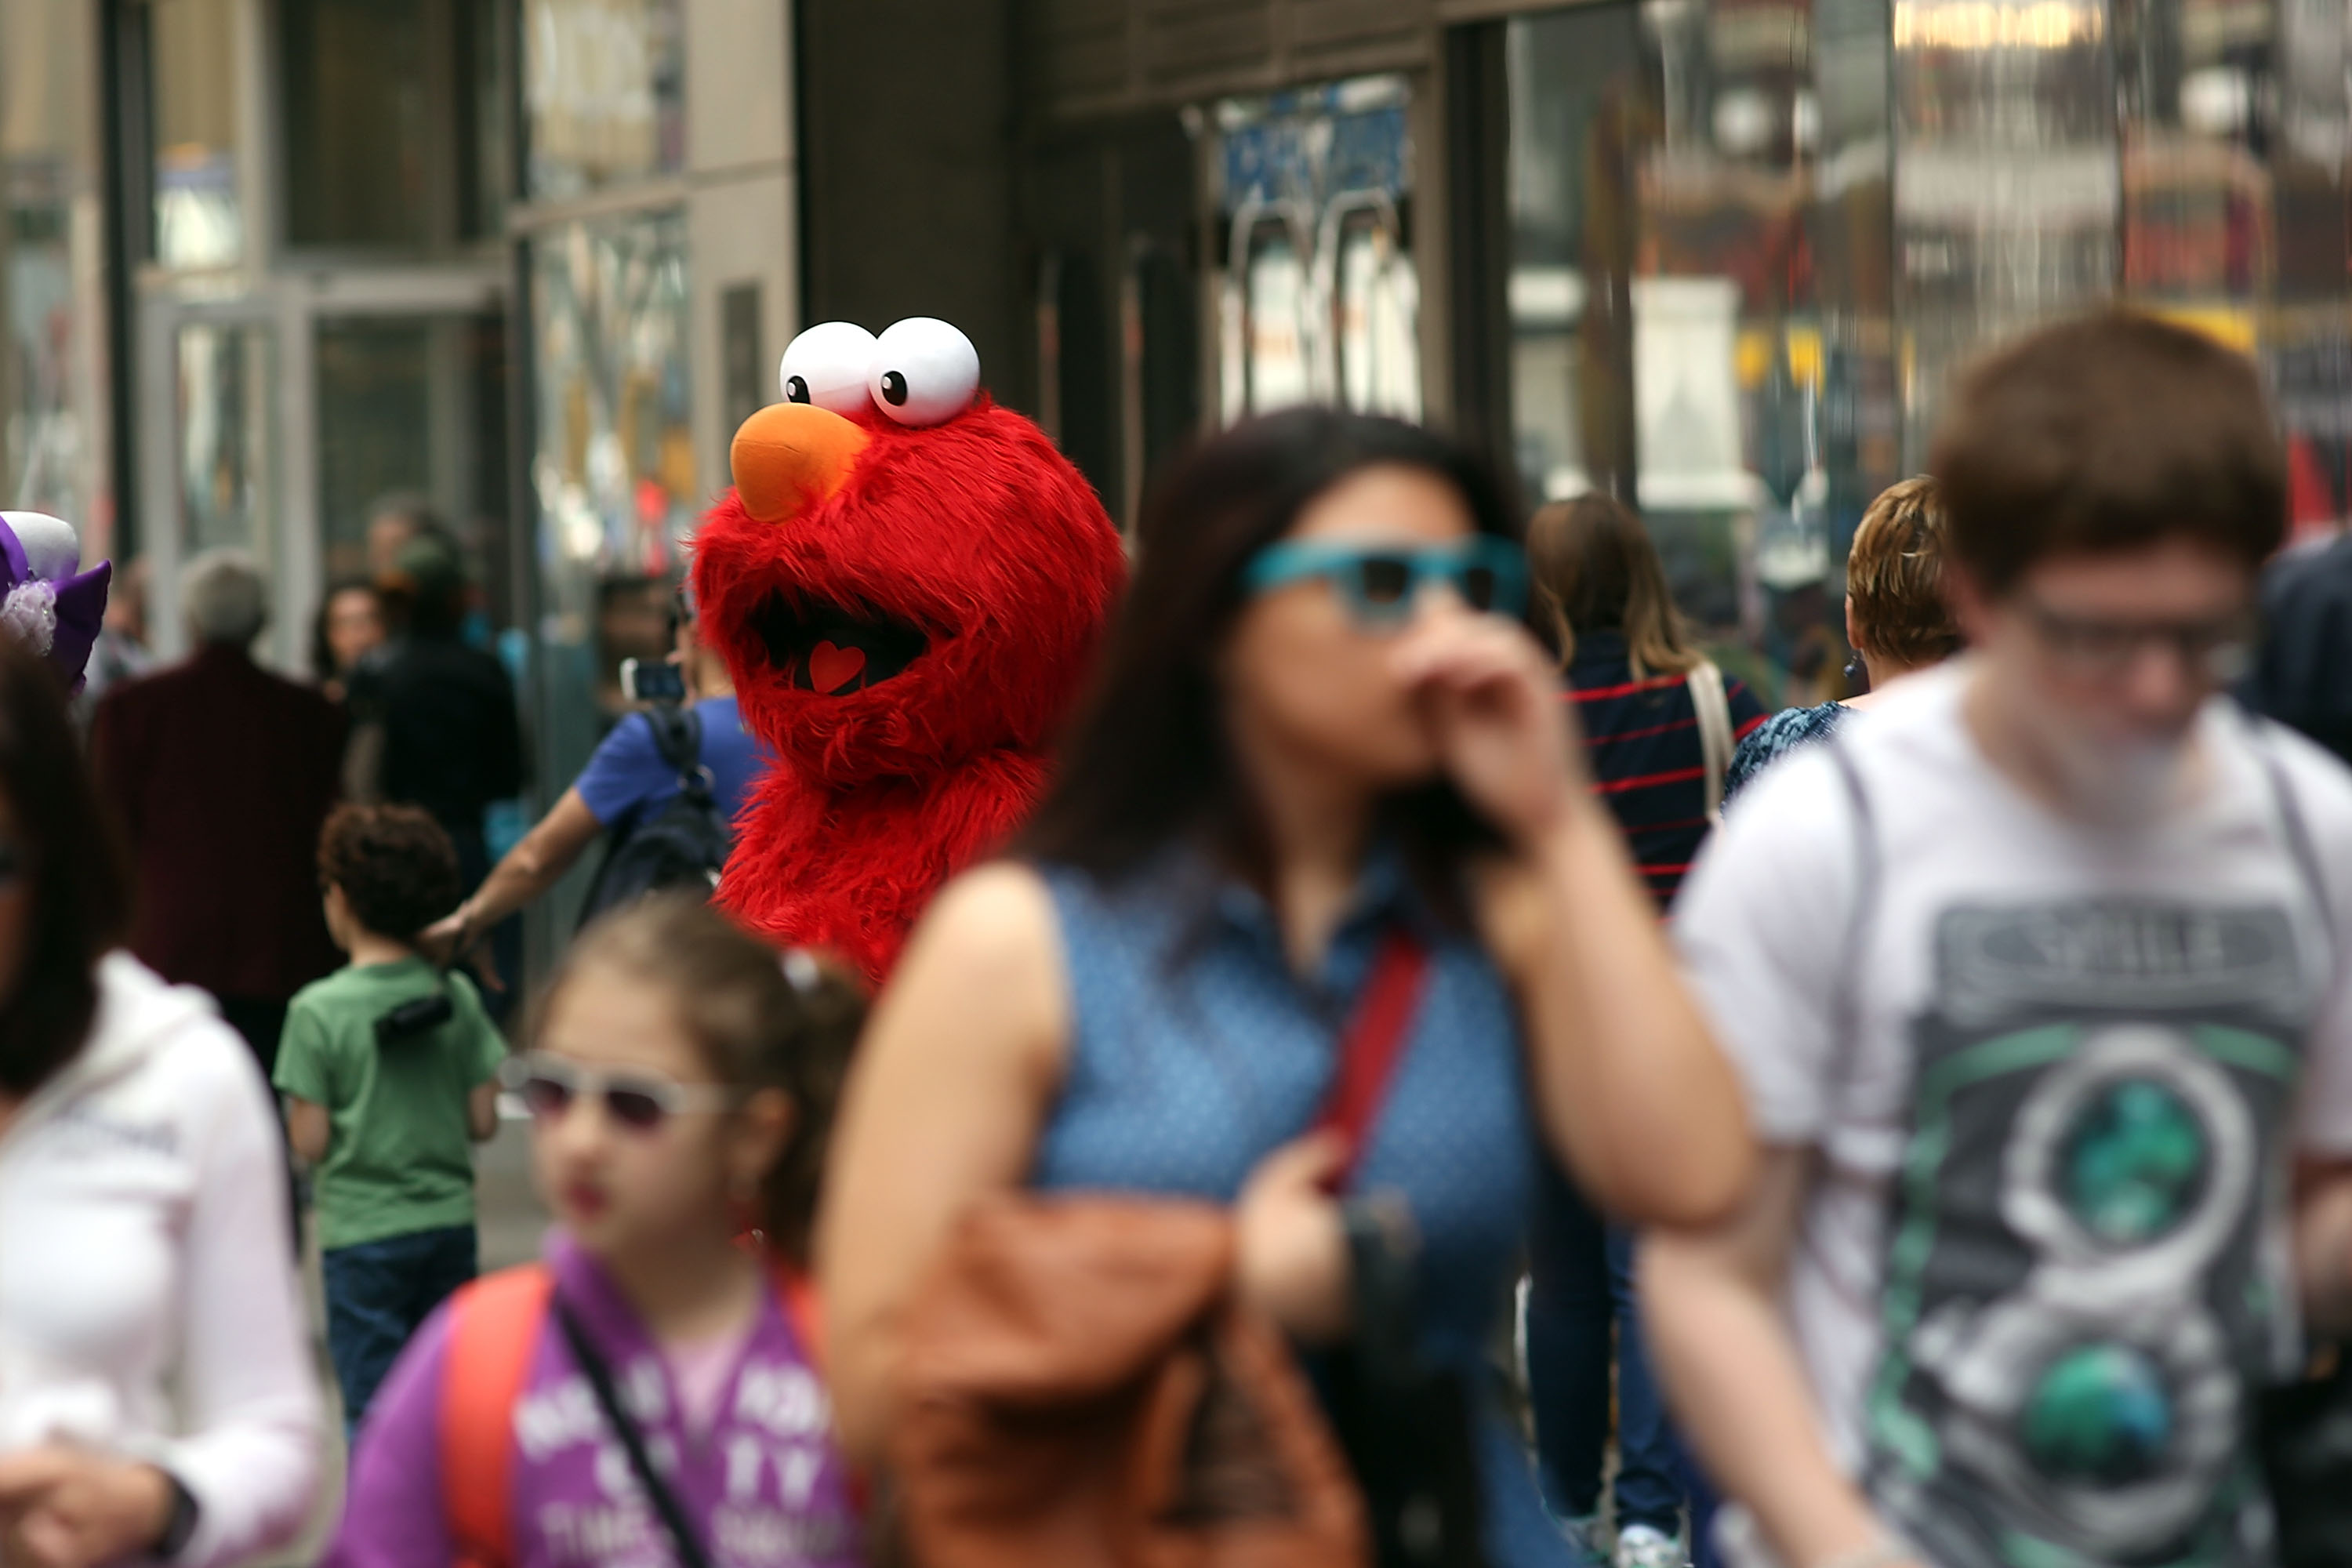 Times Square's costumed characters descend on pedestrianized Rockefeller Center